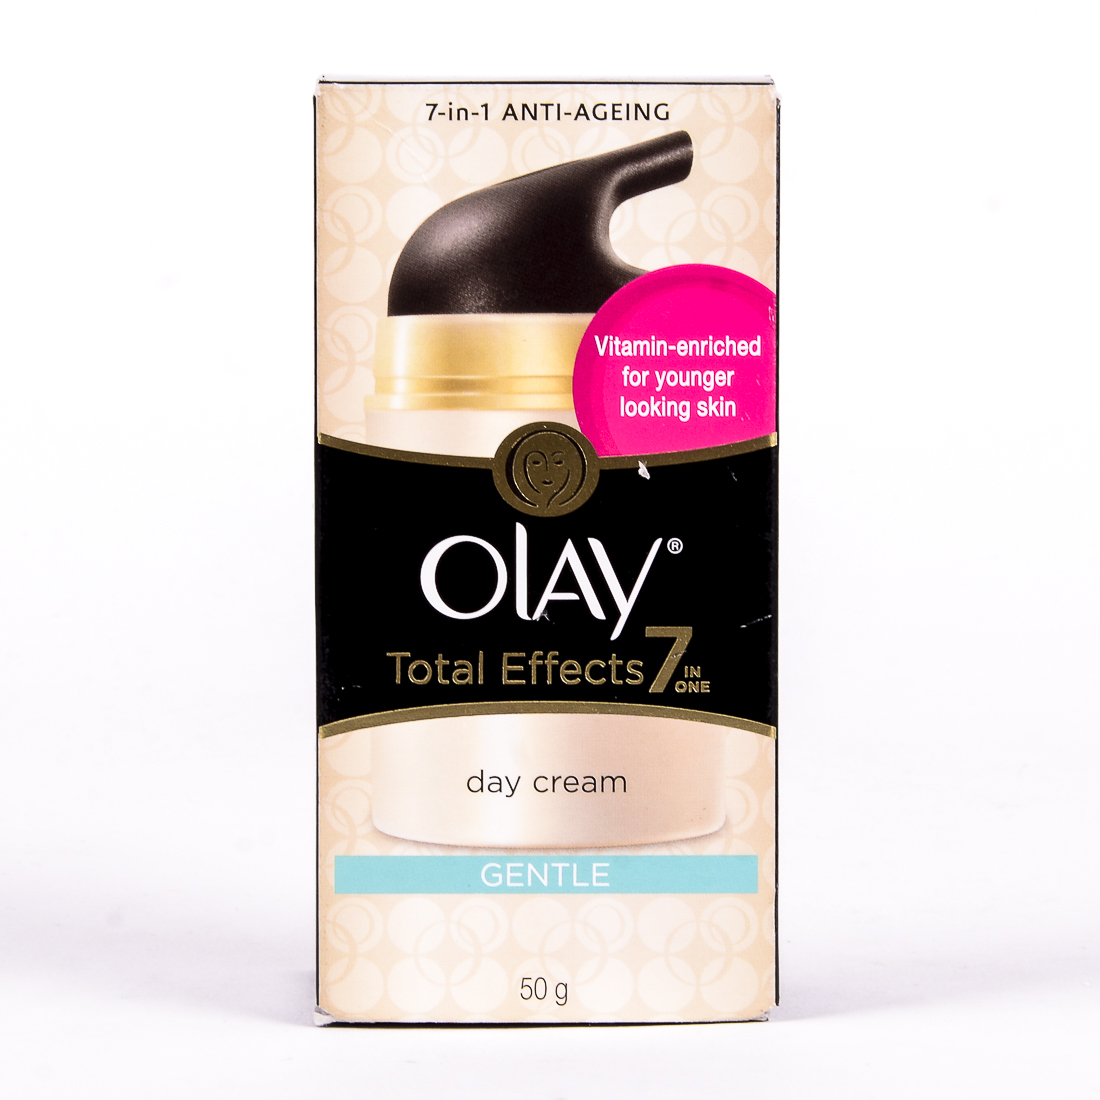 Philippines Olay Total Effects Day Cream 50g Gentle Price Me 7 In One Anti Ageing Night 50gr